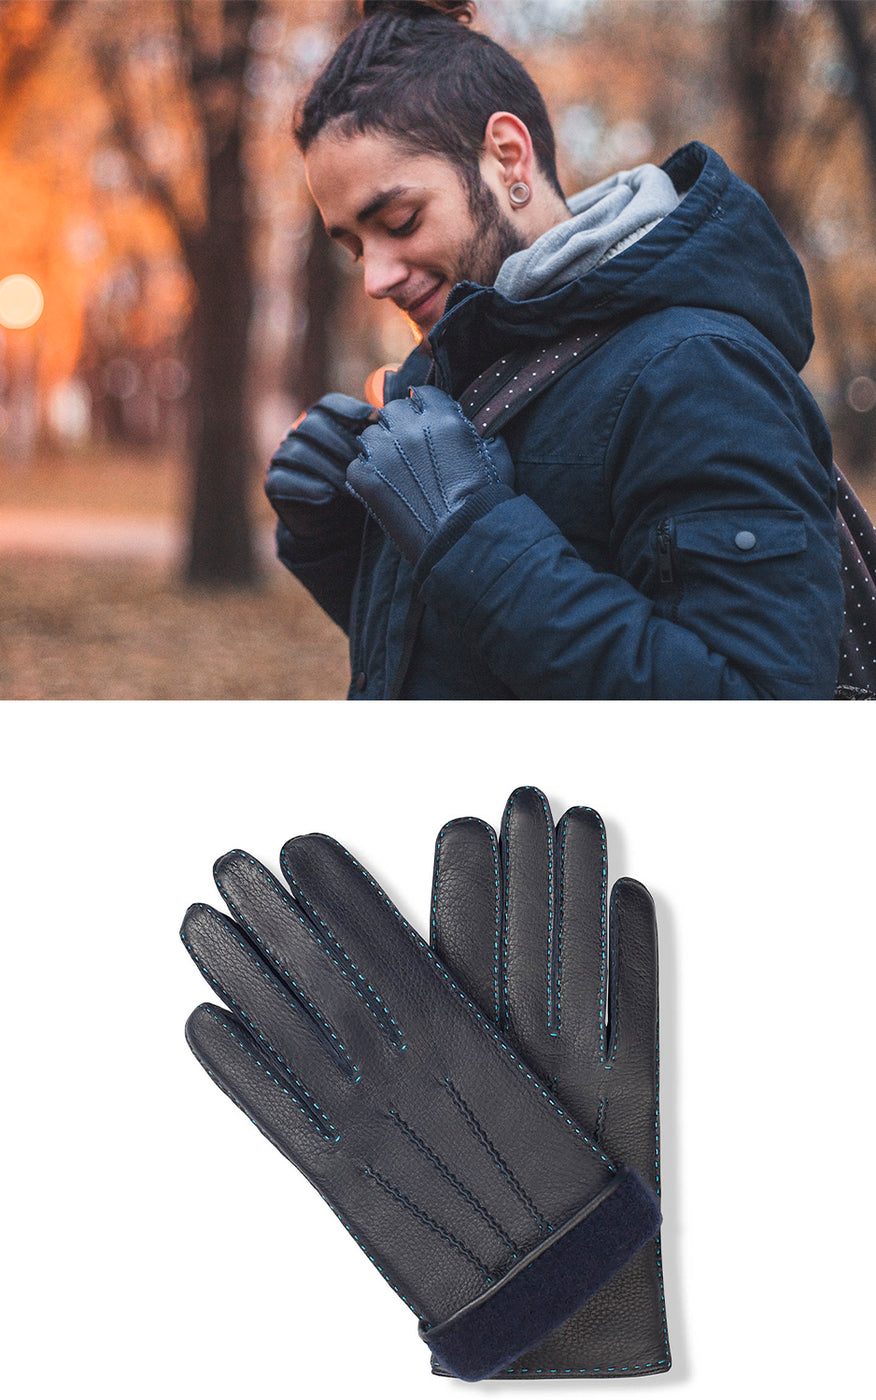 Man wears navy blue coat, backpack and navy blue leather gloves